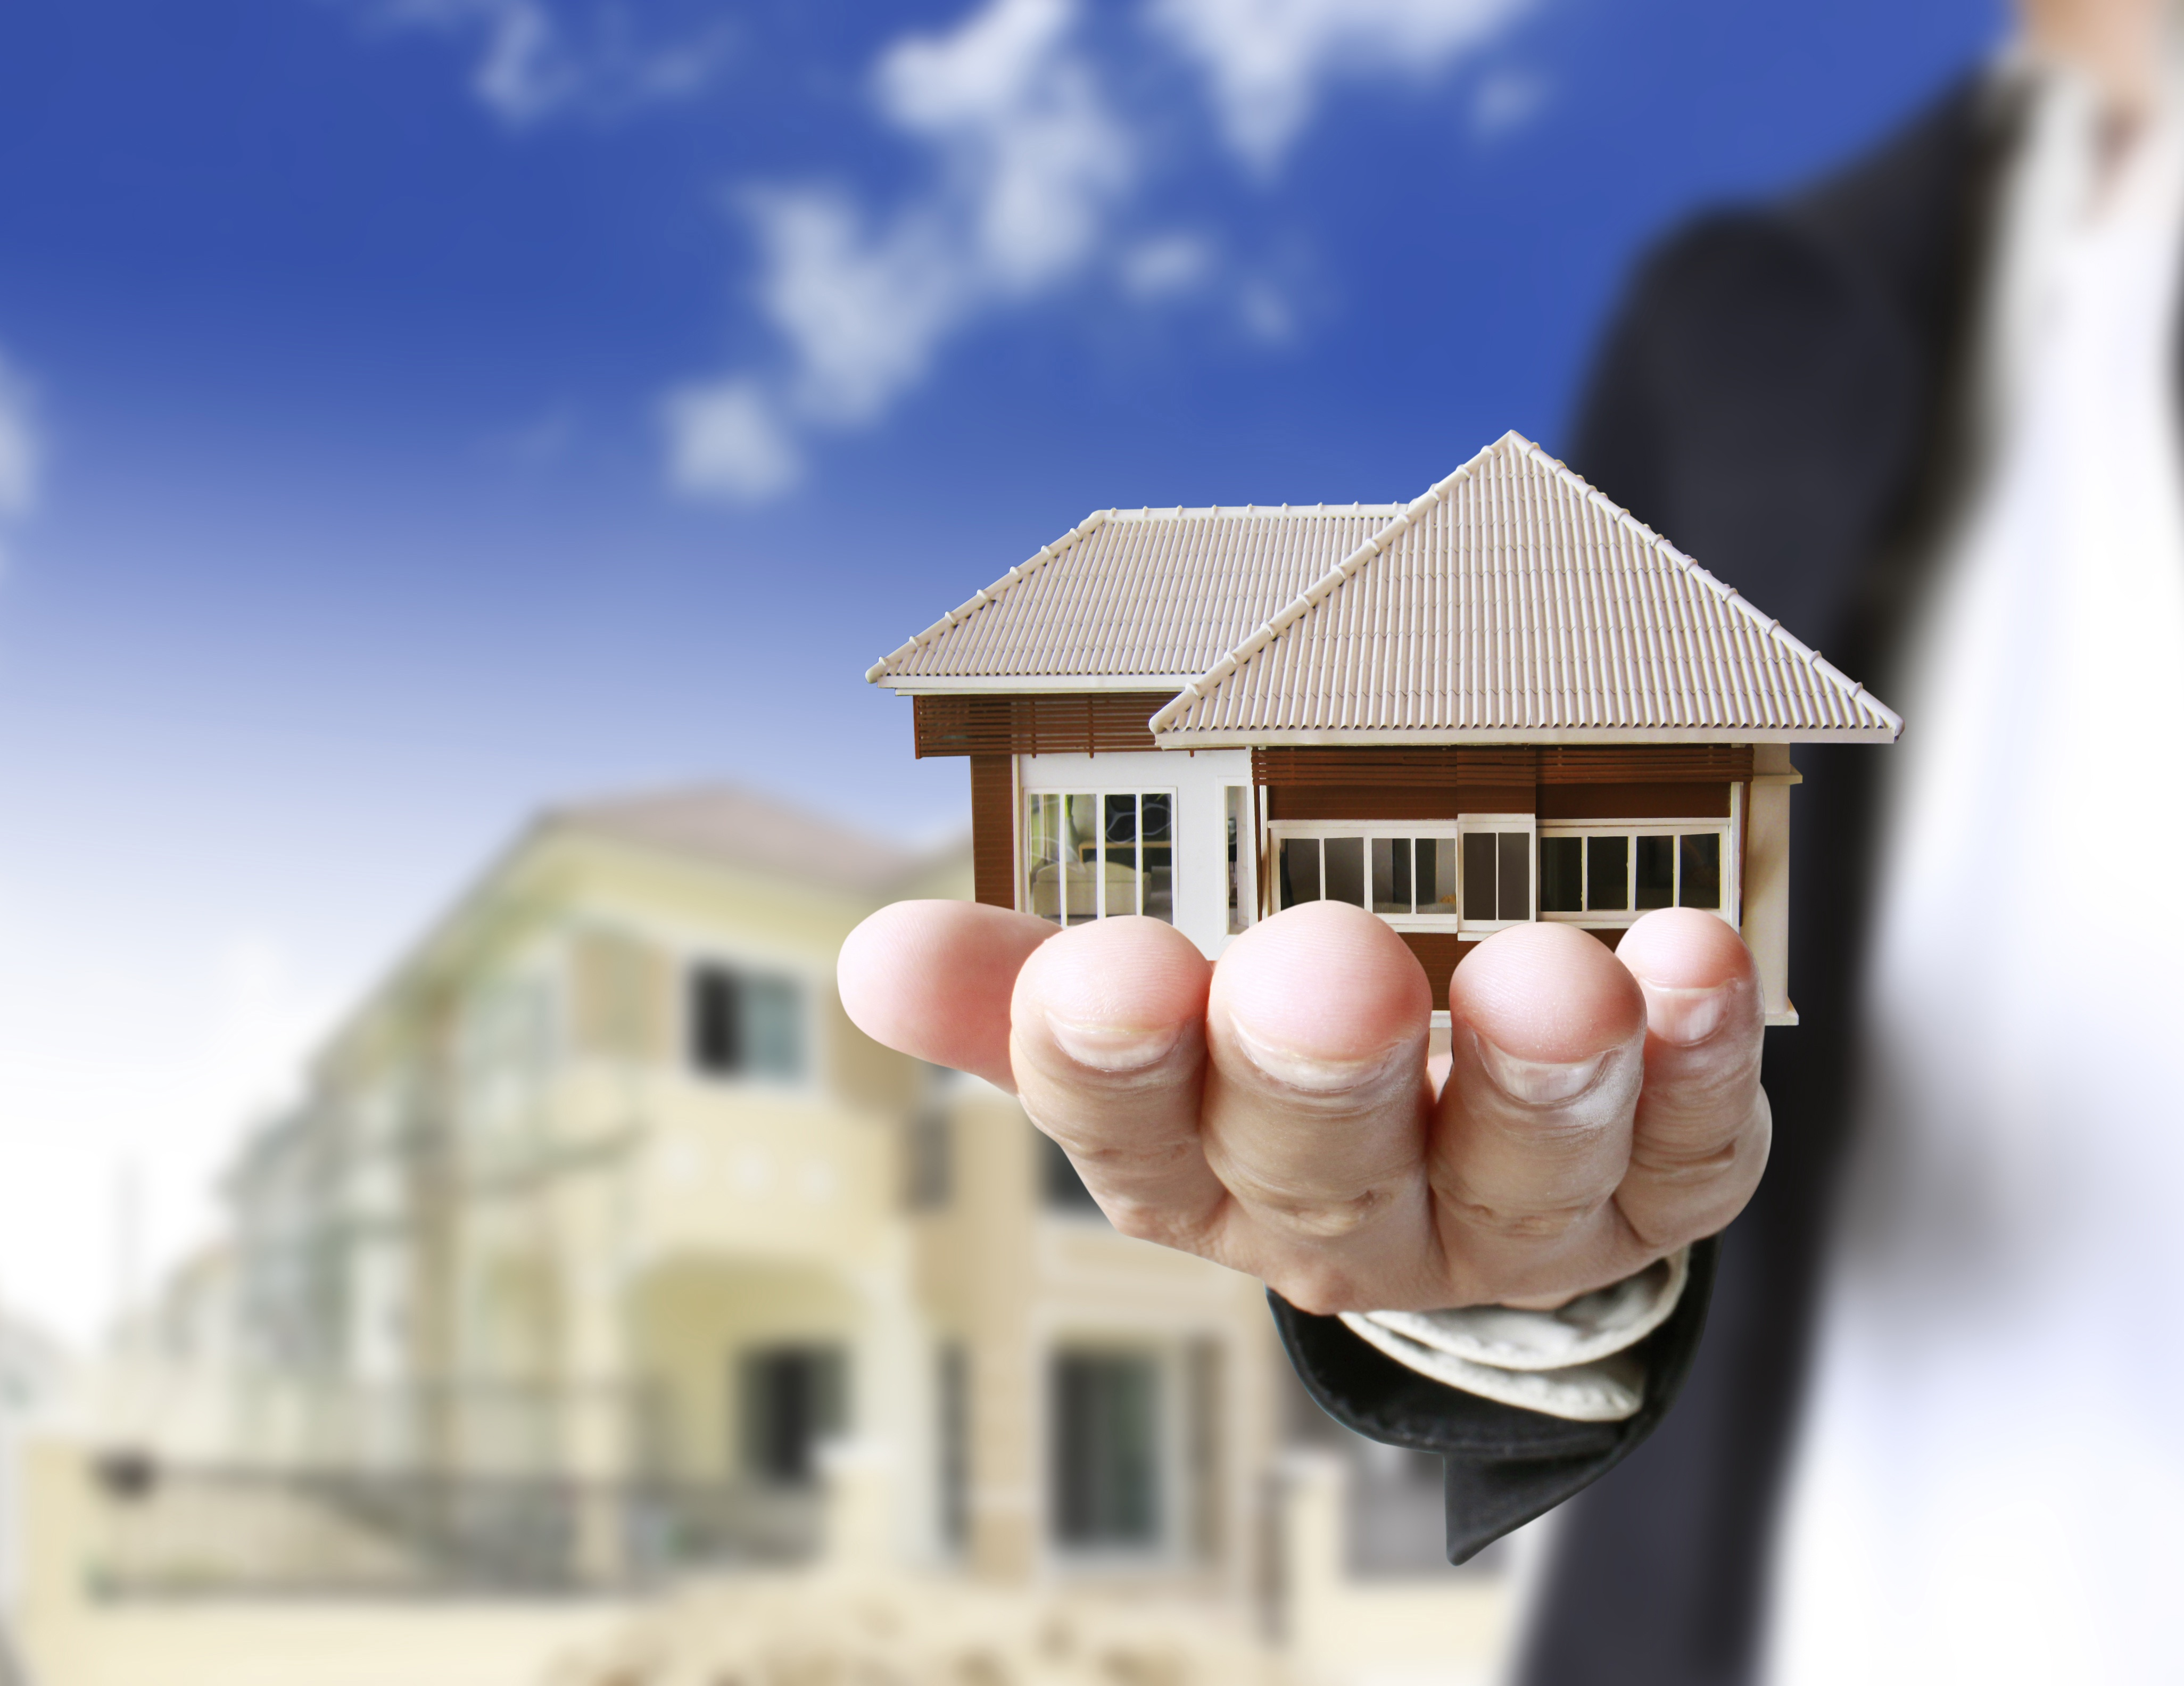 CSCEC raised to 1st-level real estate developer in S China's Zhenjiang